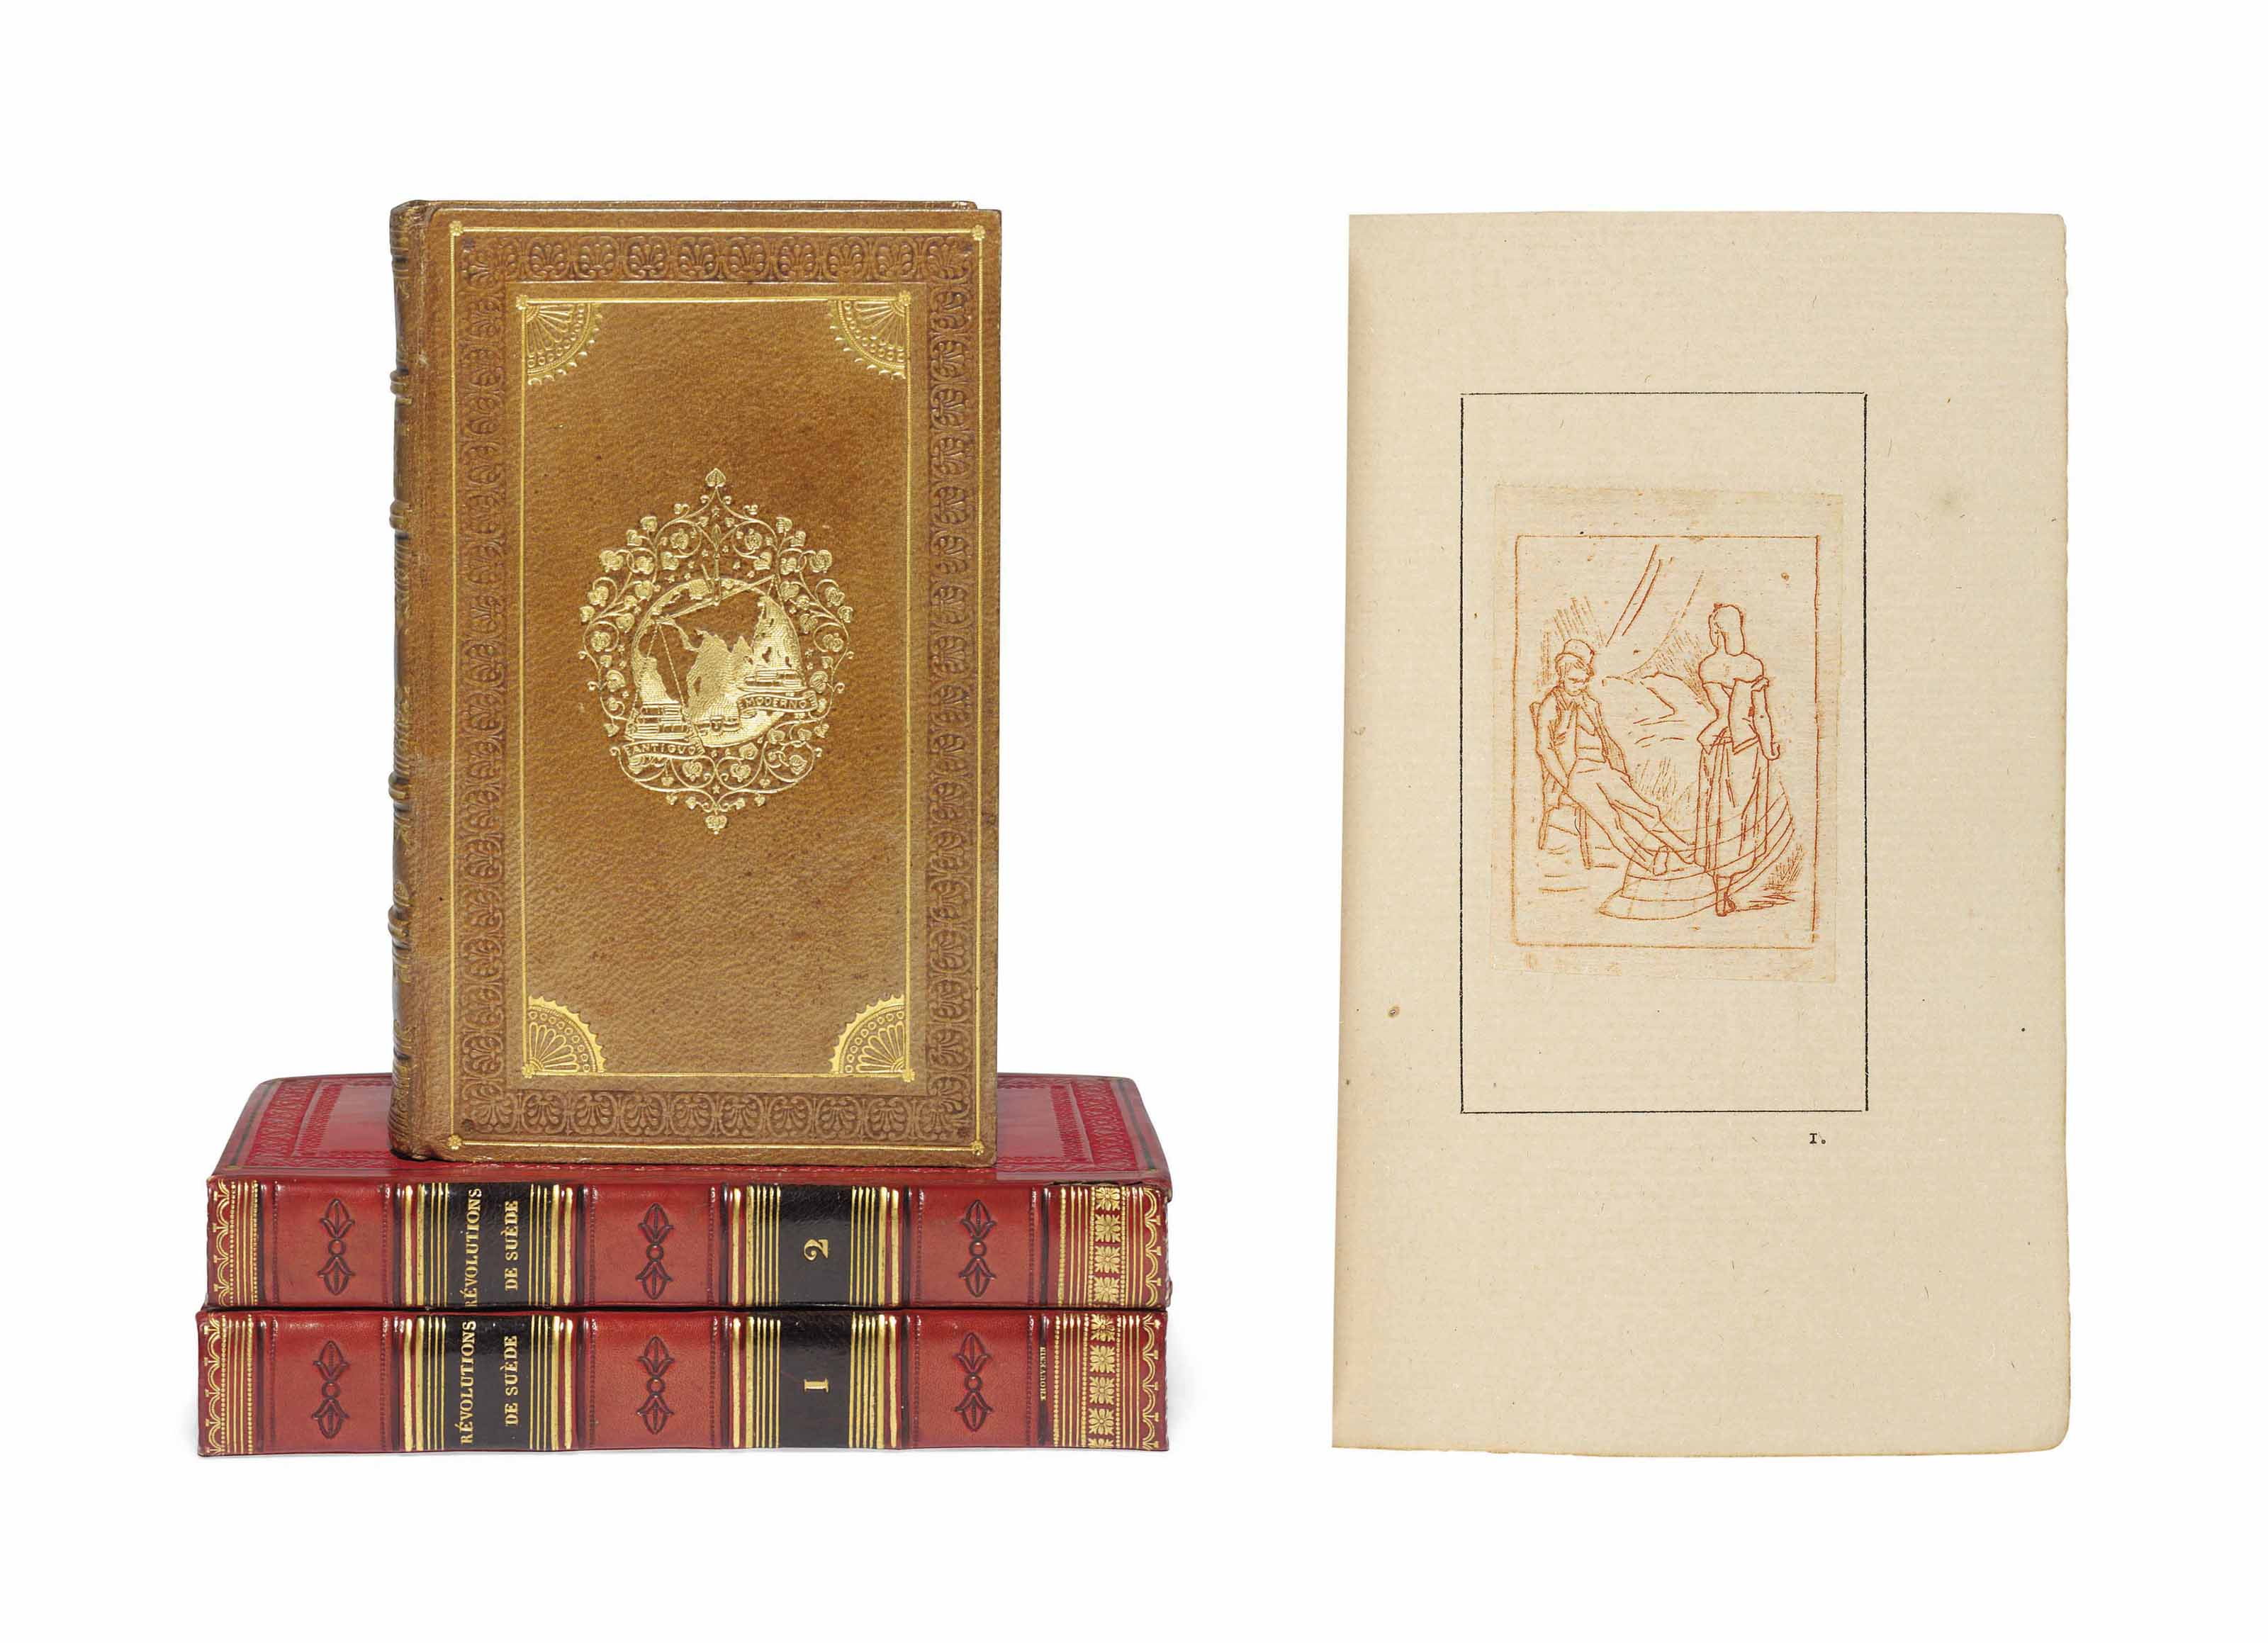 MONNIER, Henry (1799-1877). Les bas-fonds de la société. [?Paris: 1883]. 18° (124 x 76mm). 8 plates drawn by Félicien Rops. Later brown half morocco by Champs, gilt spine compartments with floral motif, original wrappers bound in. Provenance: purchased from Meynial, 1925. ONE OF 64 COPIES.